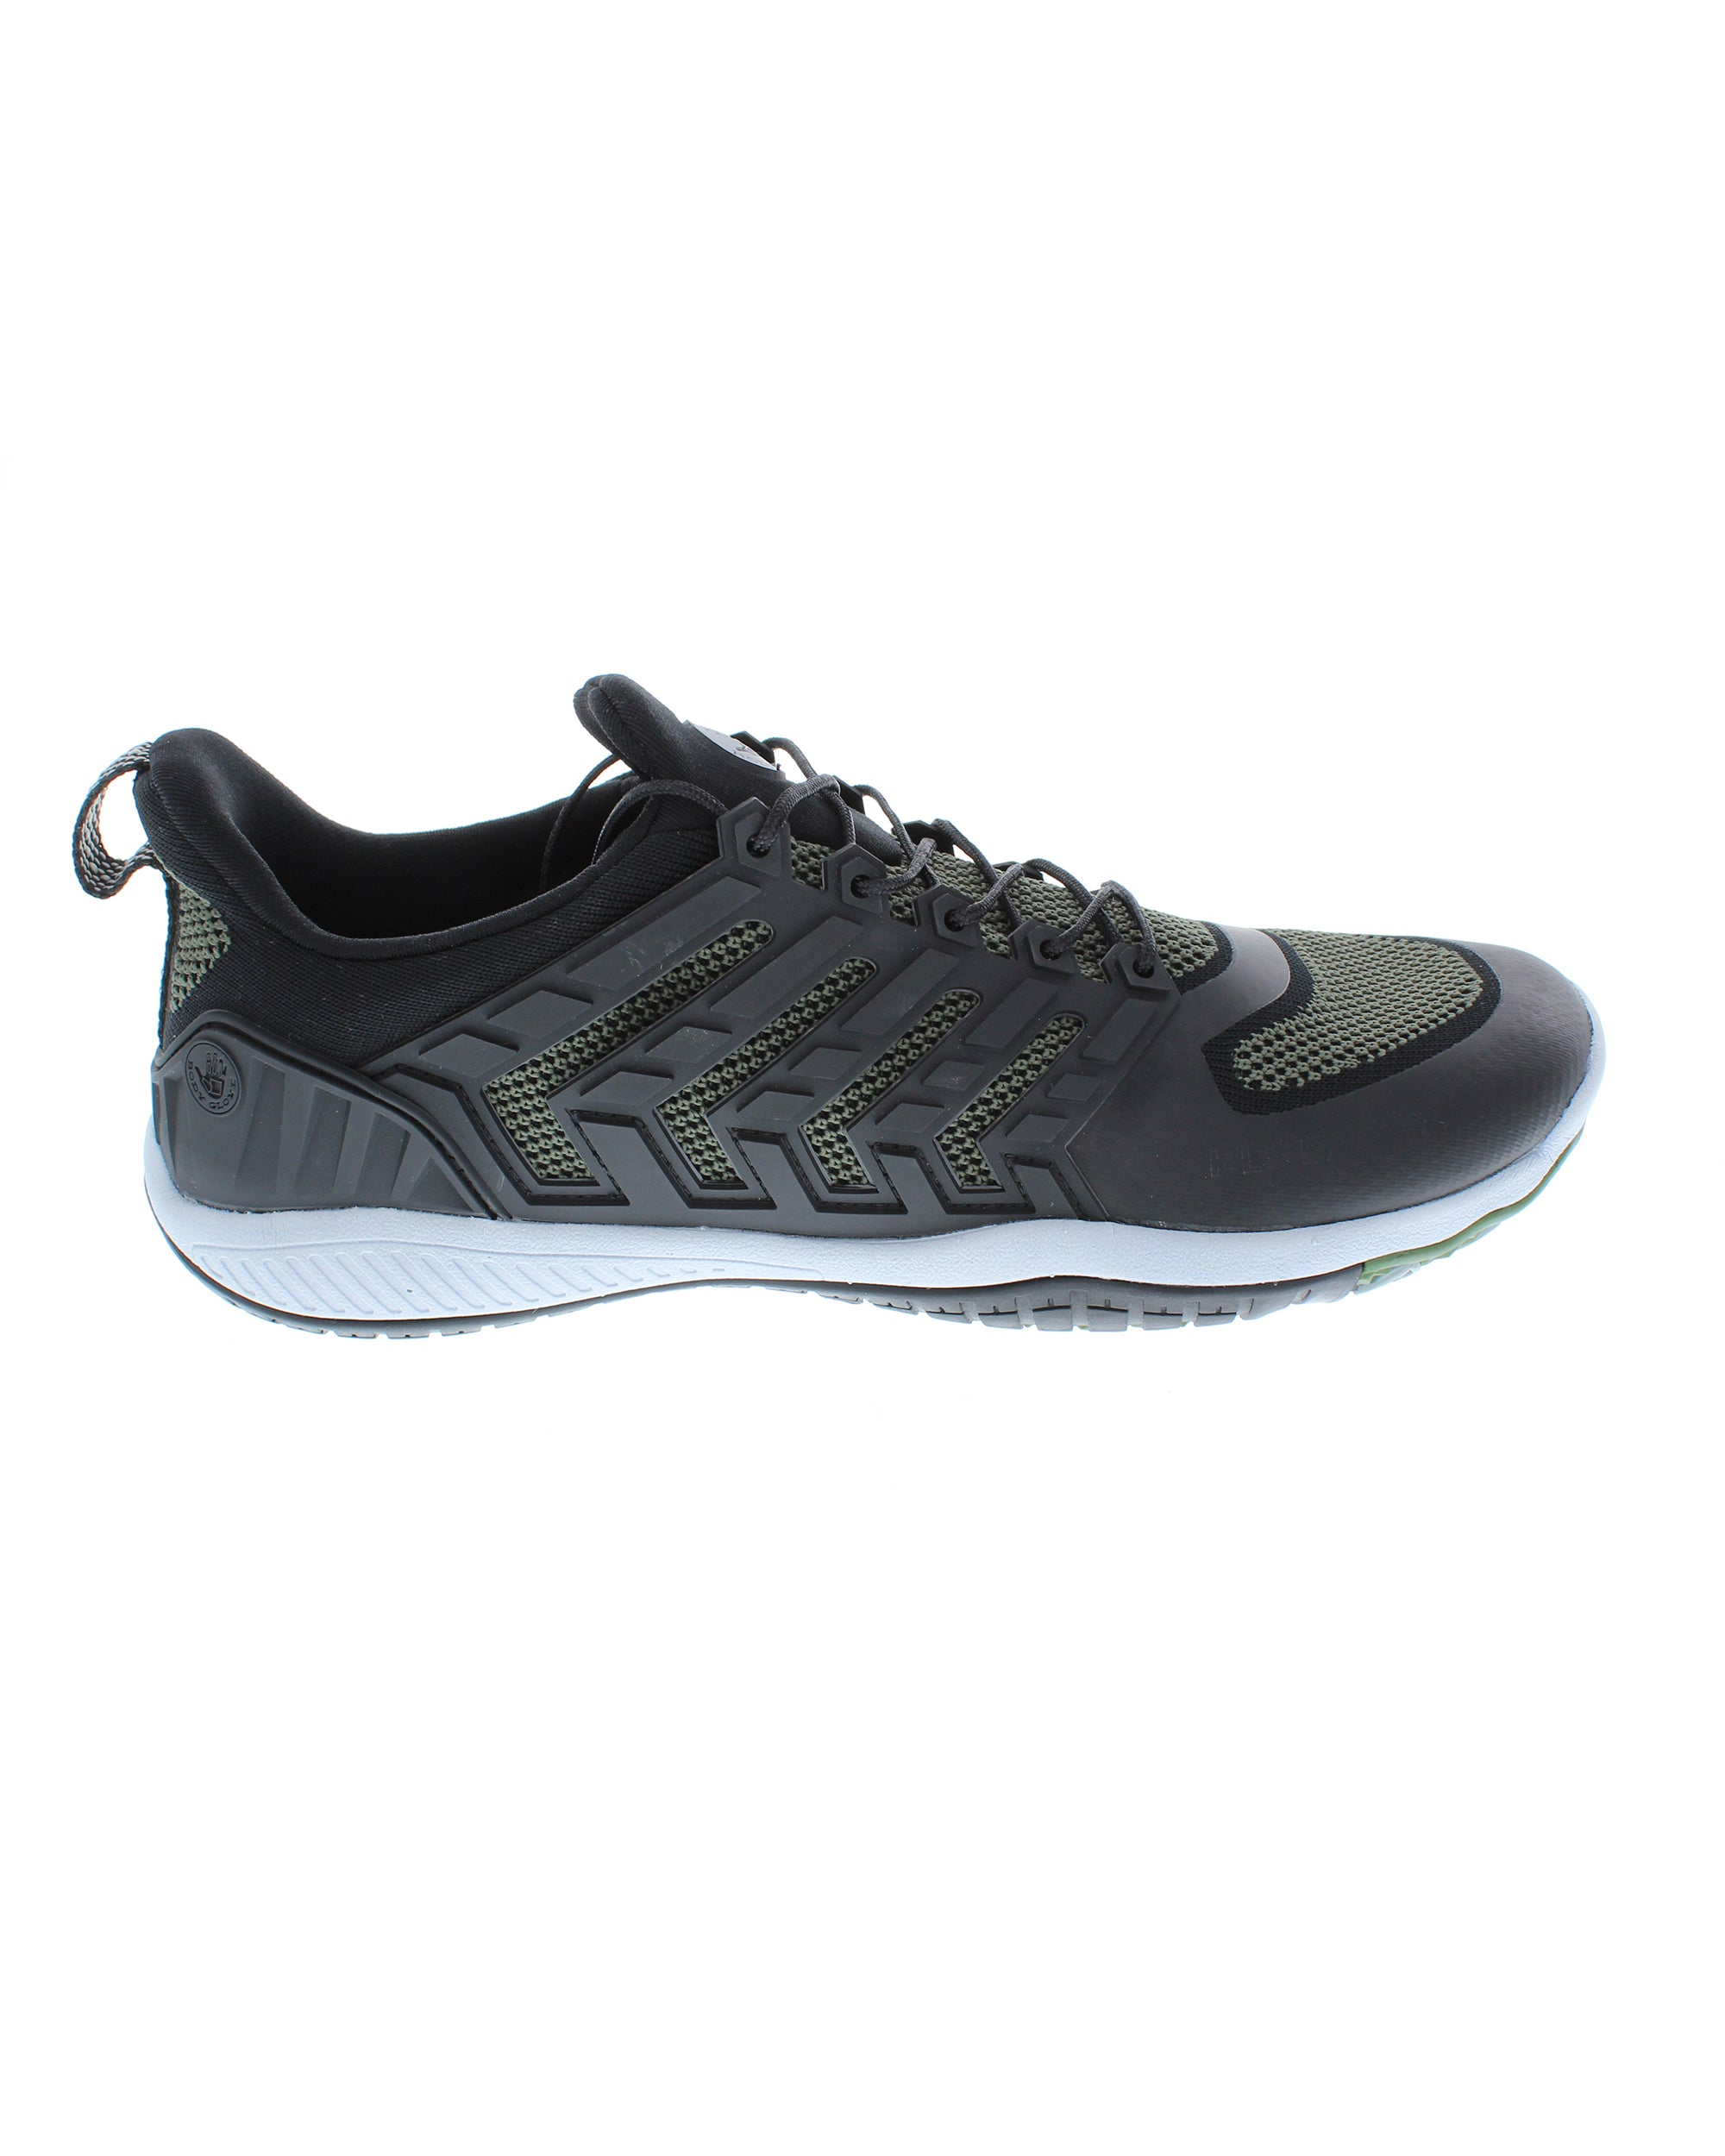 Men's Dynamo Ribcage Water Shoes - Black/Agave – Body Glove